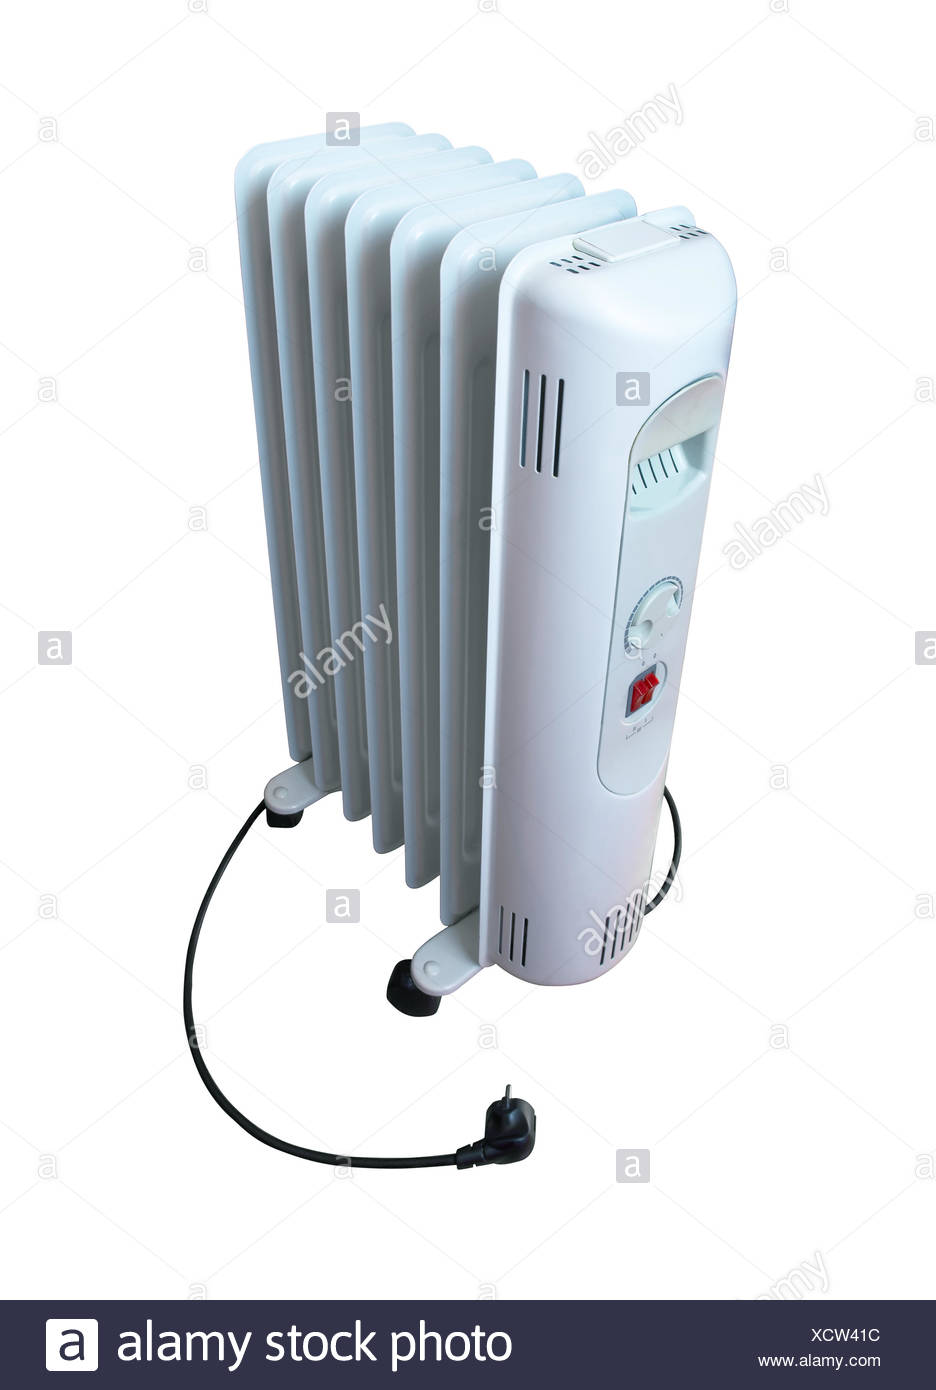 Electric oil heater - Stock Image